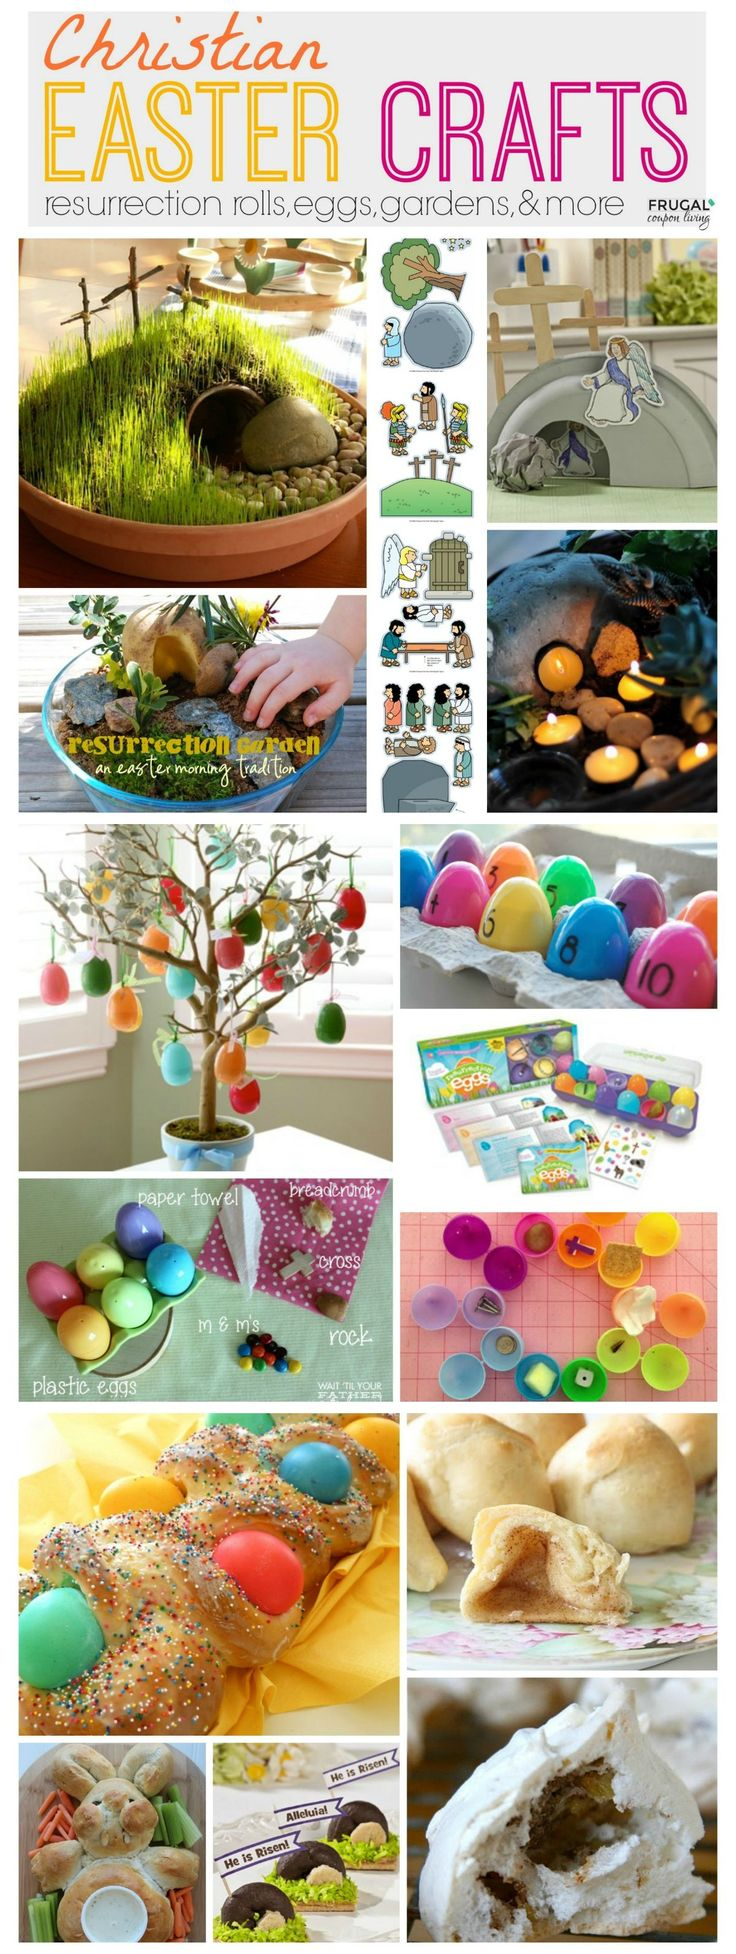 Christian easter crafts resurrection eggs gardens and for Children s christian crafts